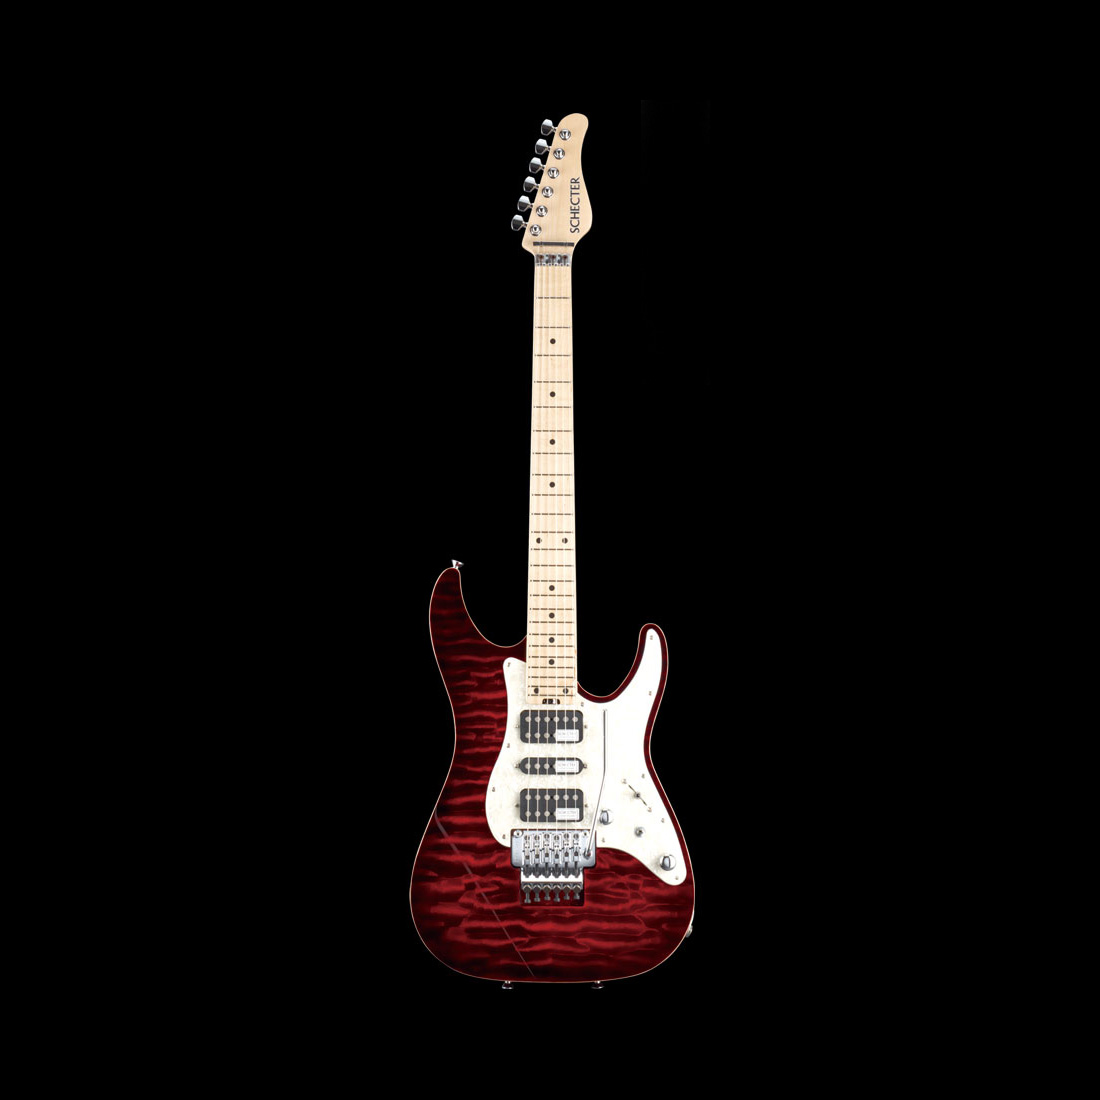 Schecter / SD-DX-24-AS-M Red Sunburst シェクター エレキギター 【お取り寄せ商品/納期別途ご案内】